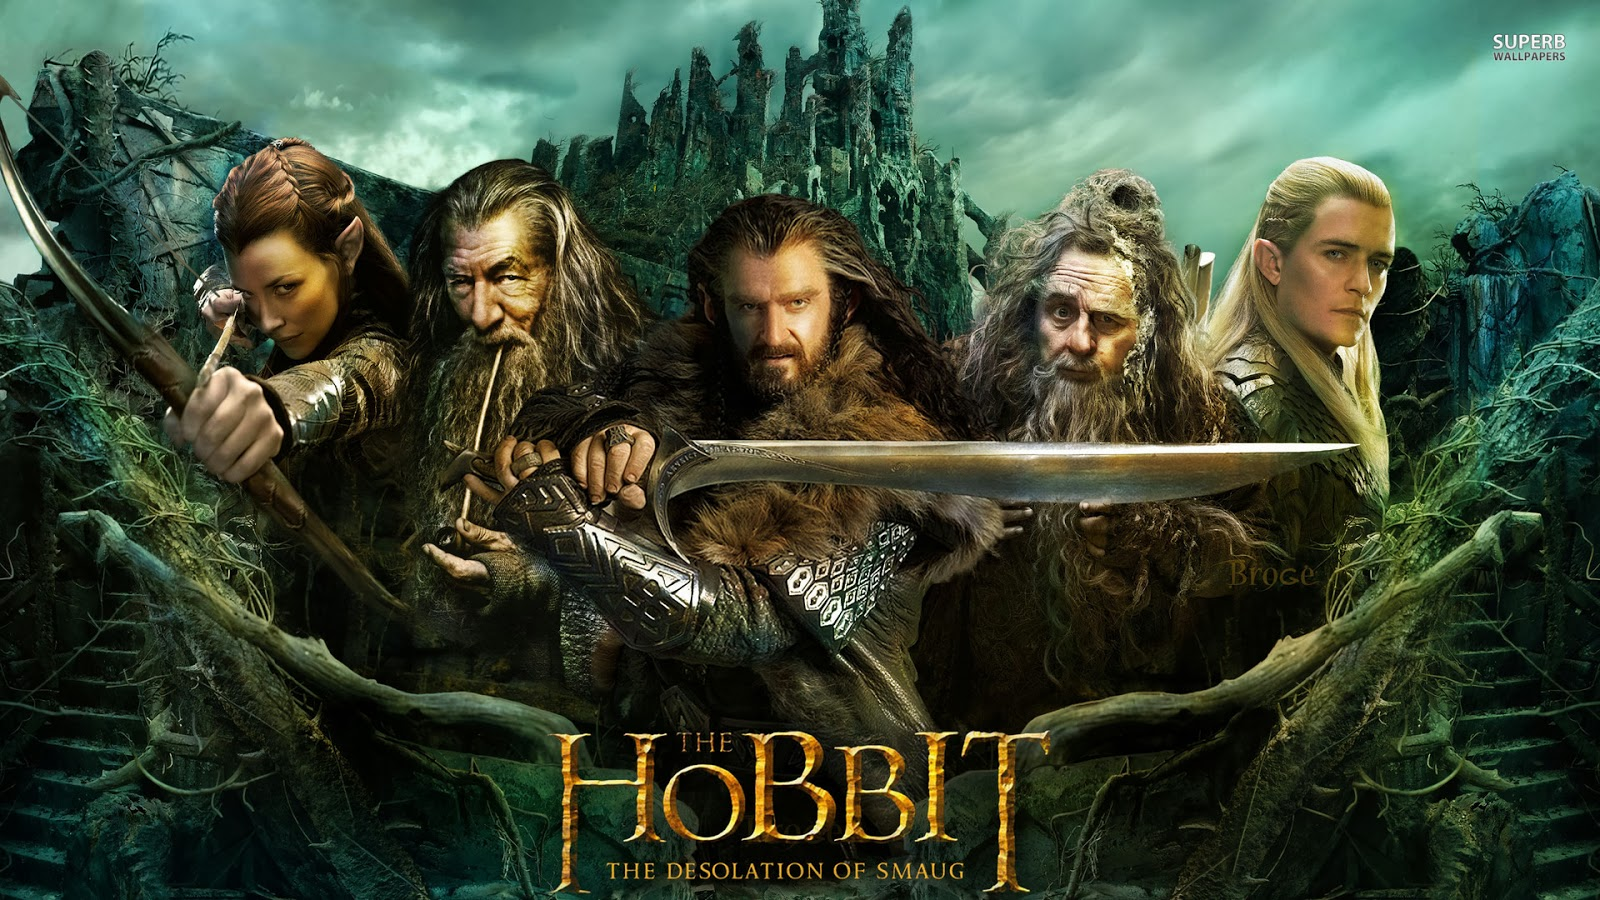 hobbit the desolation of smaug 2013 also known as the hobbit part 2 ...